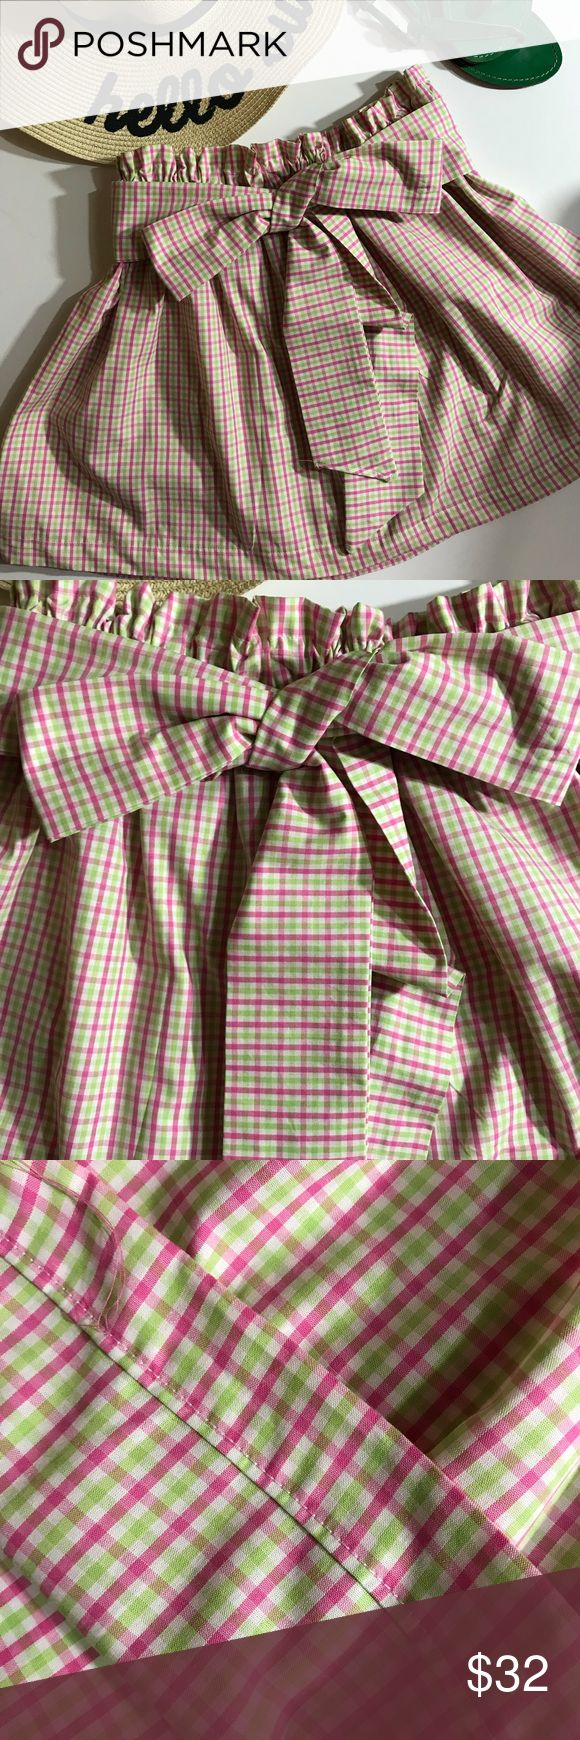 Pink & Green Skirt with Bow - Custom Sizes Beautiful custom pink and green gingham cotton skirt with detached tie belt.  Elastic waist.  Custom made from the finest cotton.  See size chart for fit. Garland Girl Skirts